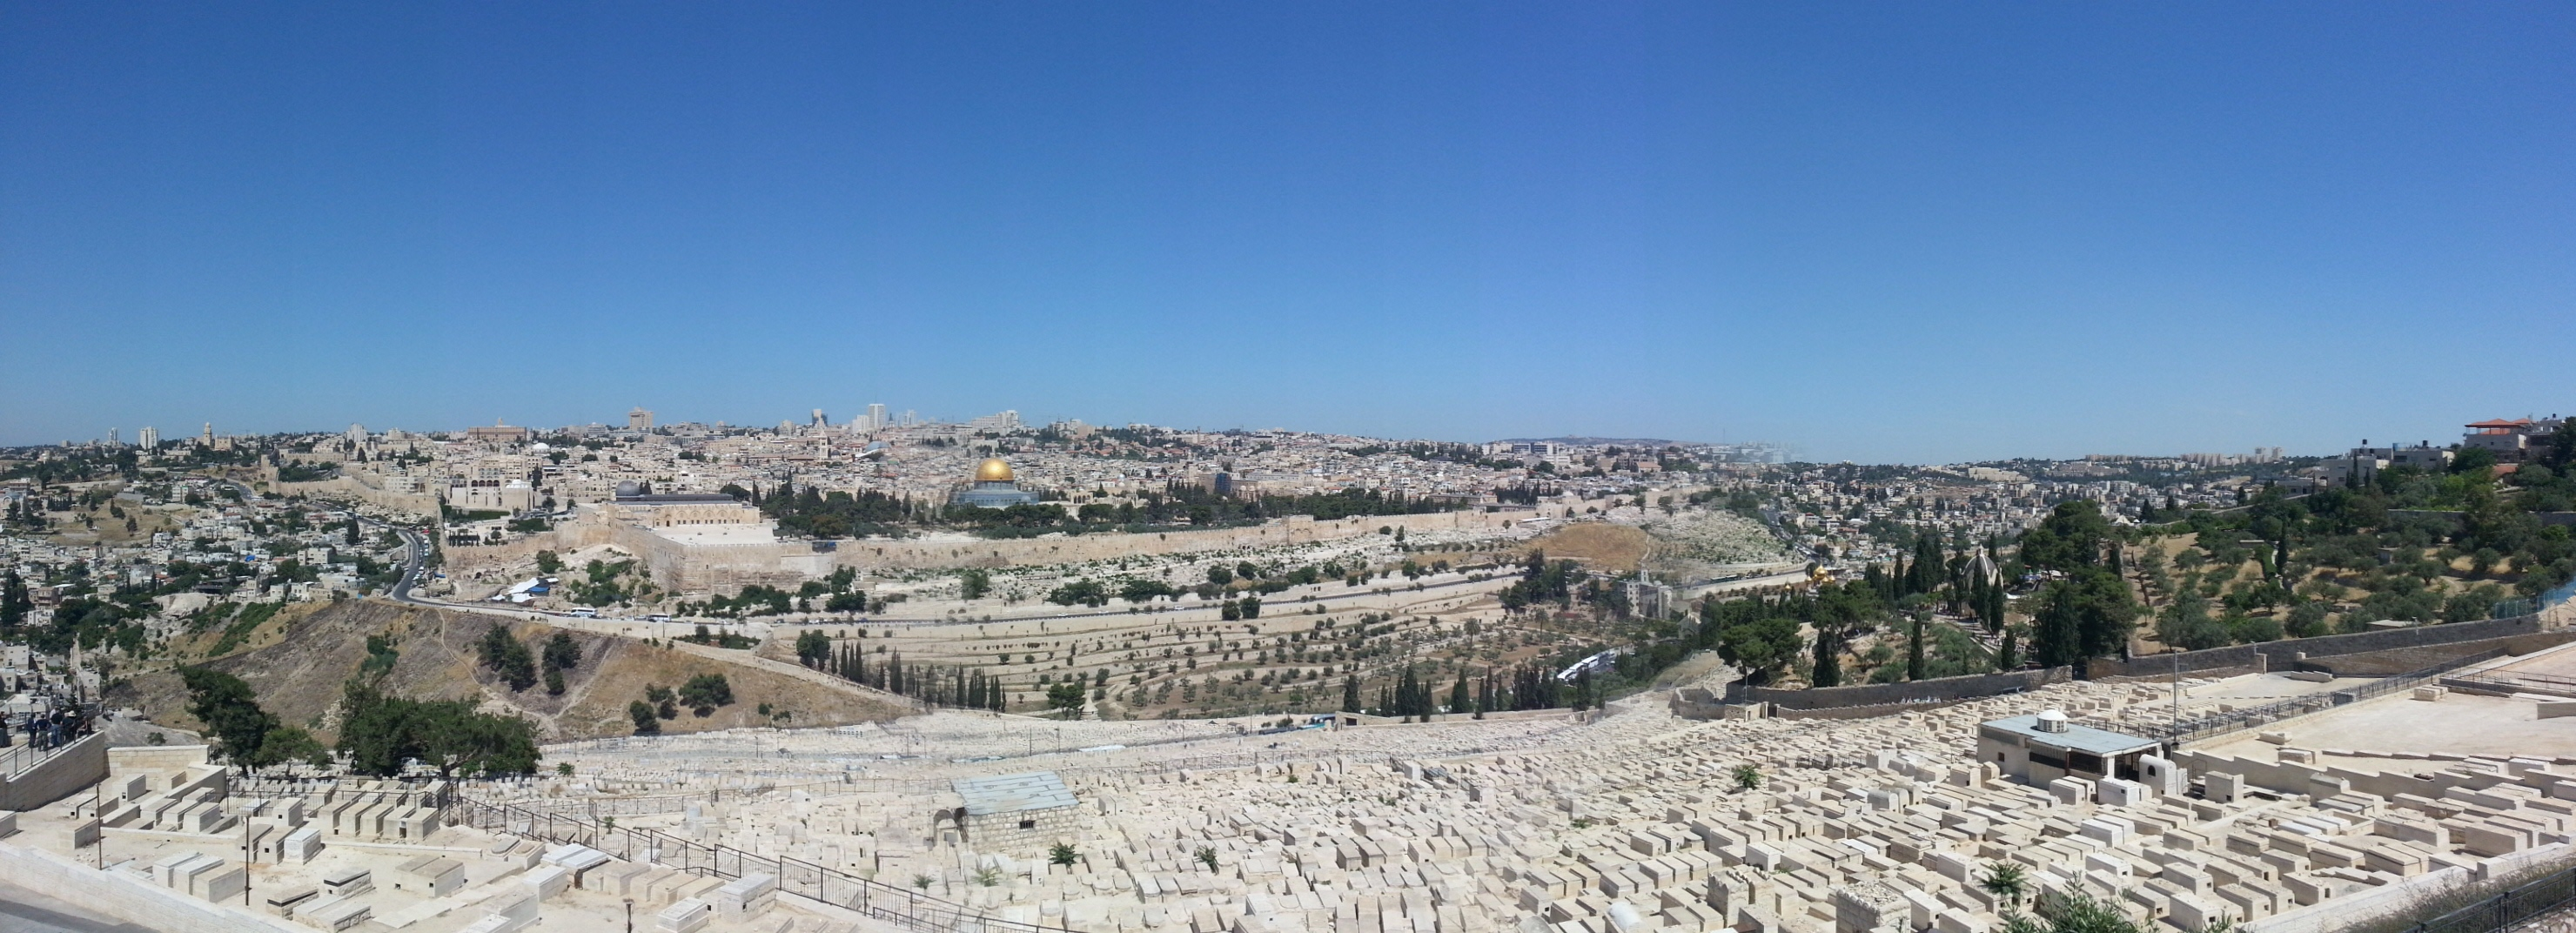 View over the Old City of Jerusalem from the Mount of Olives